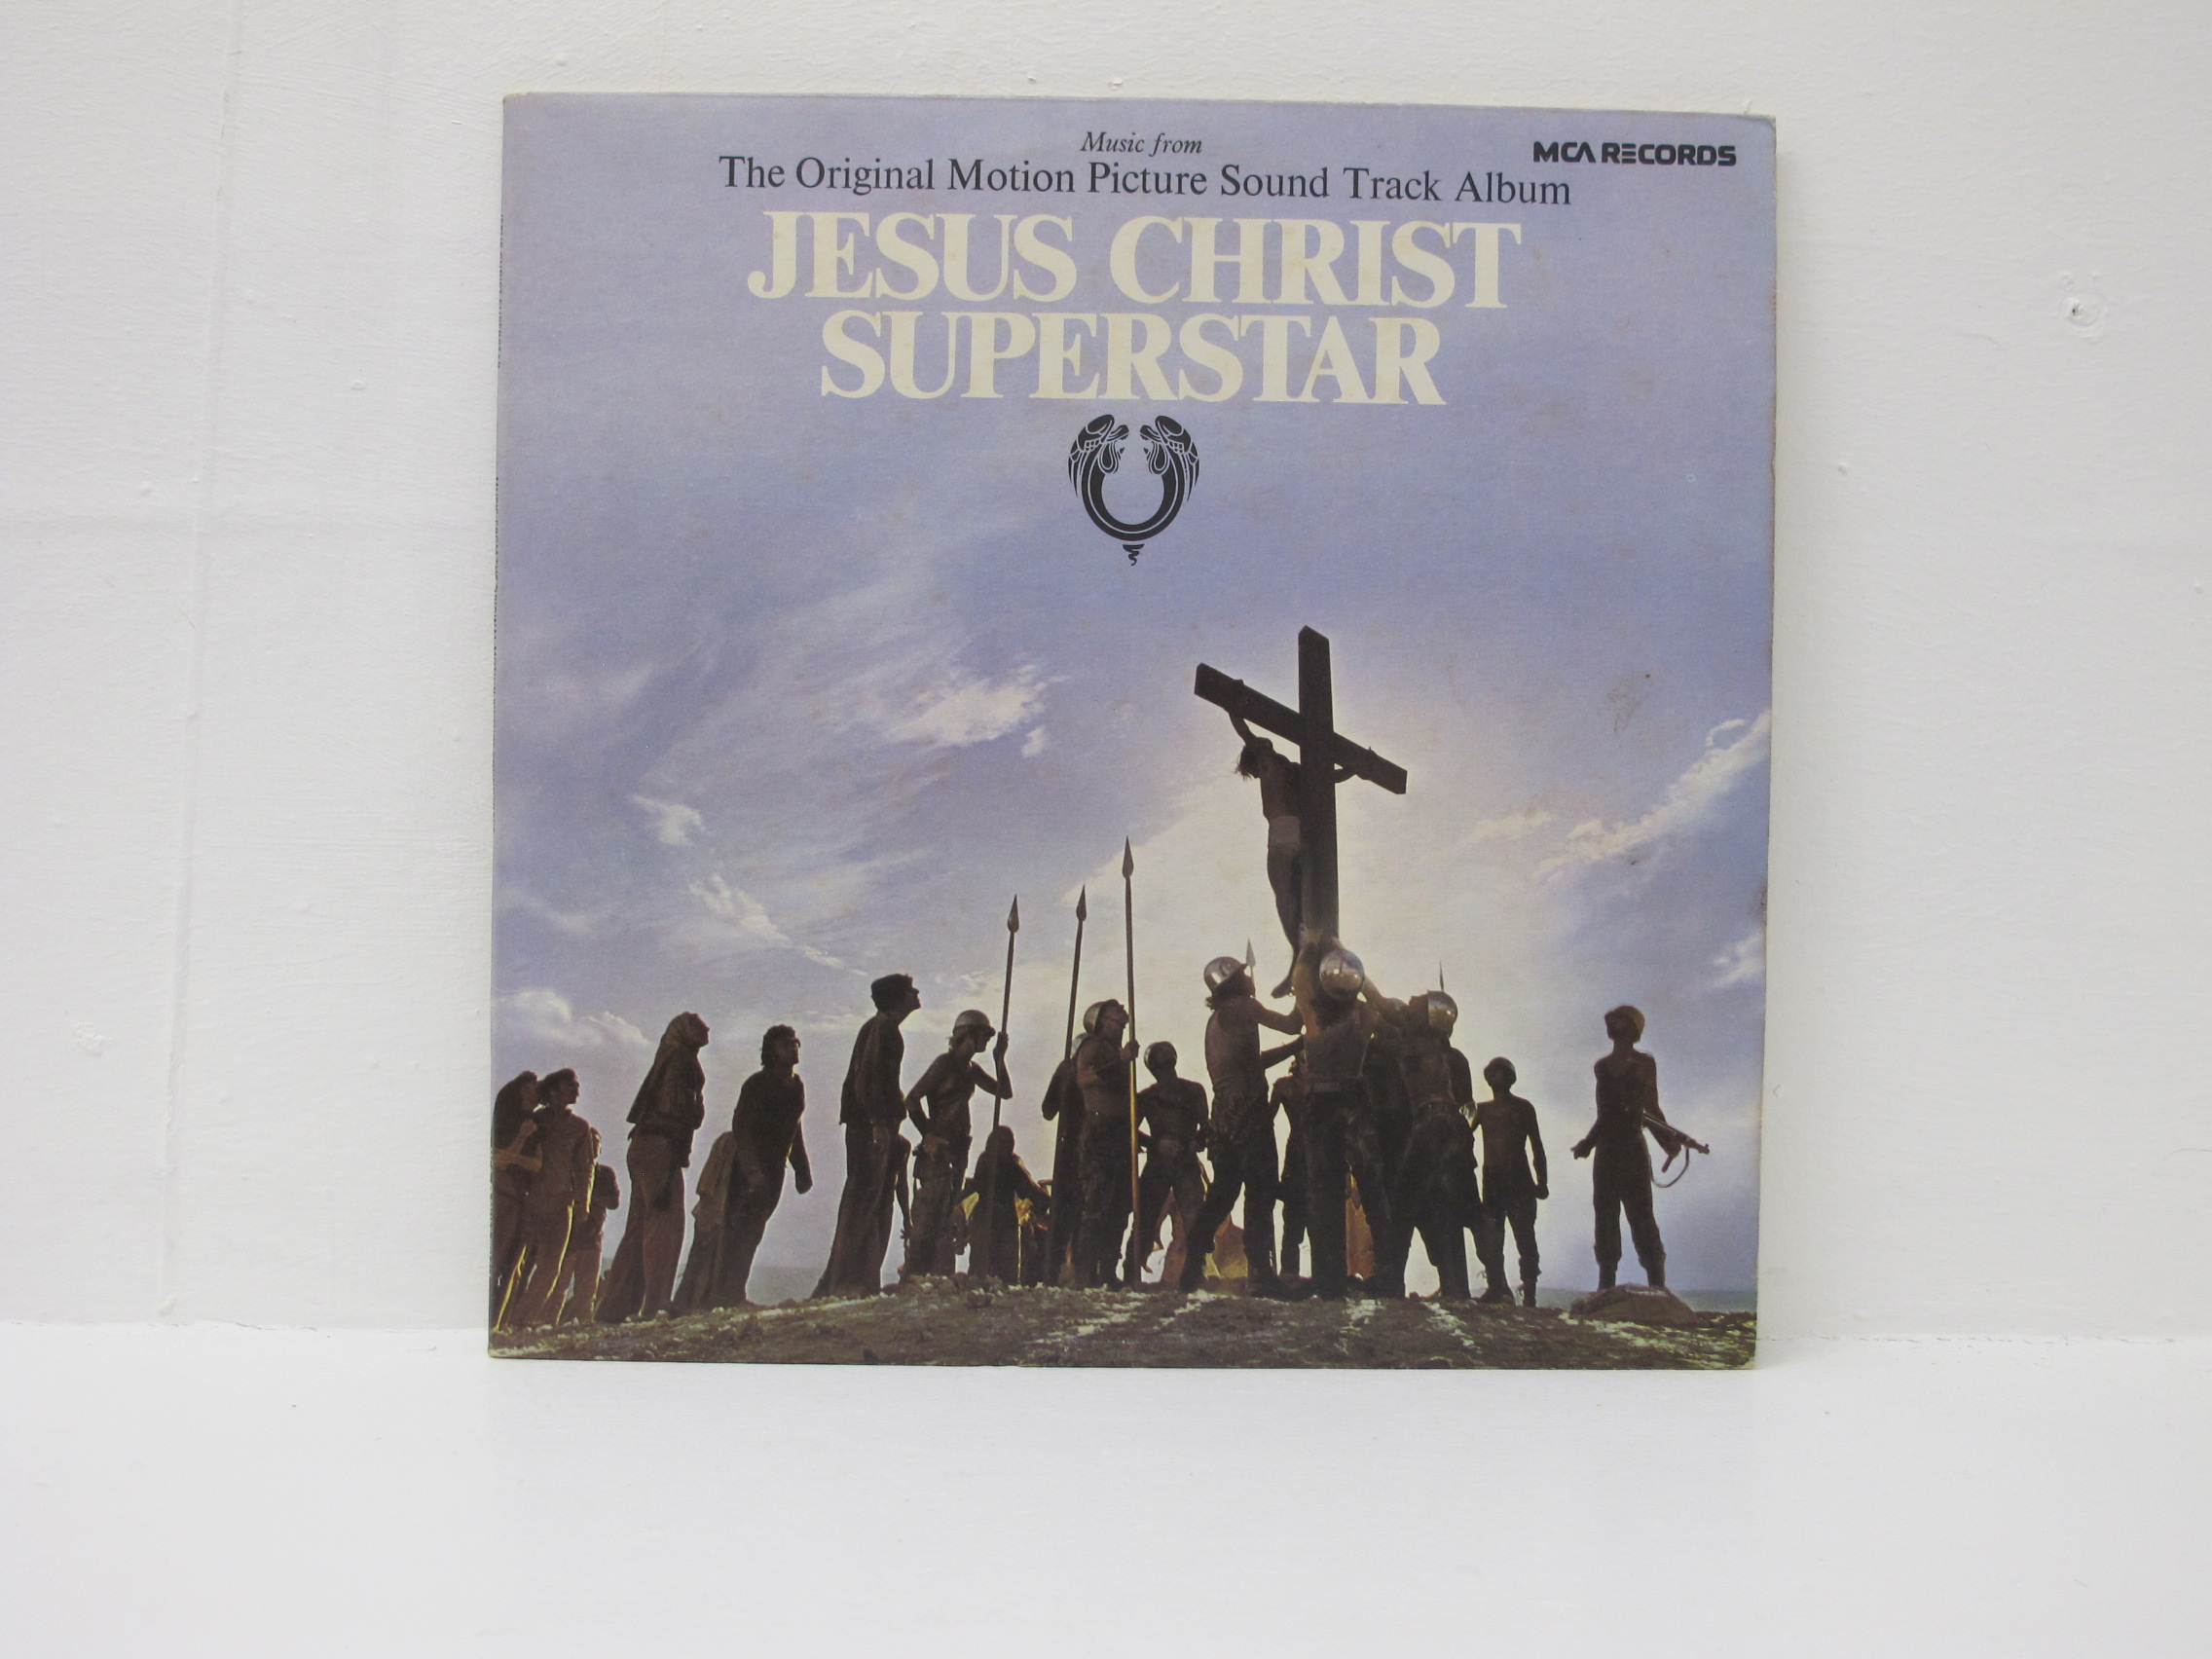 Jesus Christ Superstar - The Original Motion Picture Sound Track Album